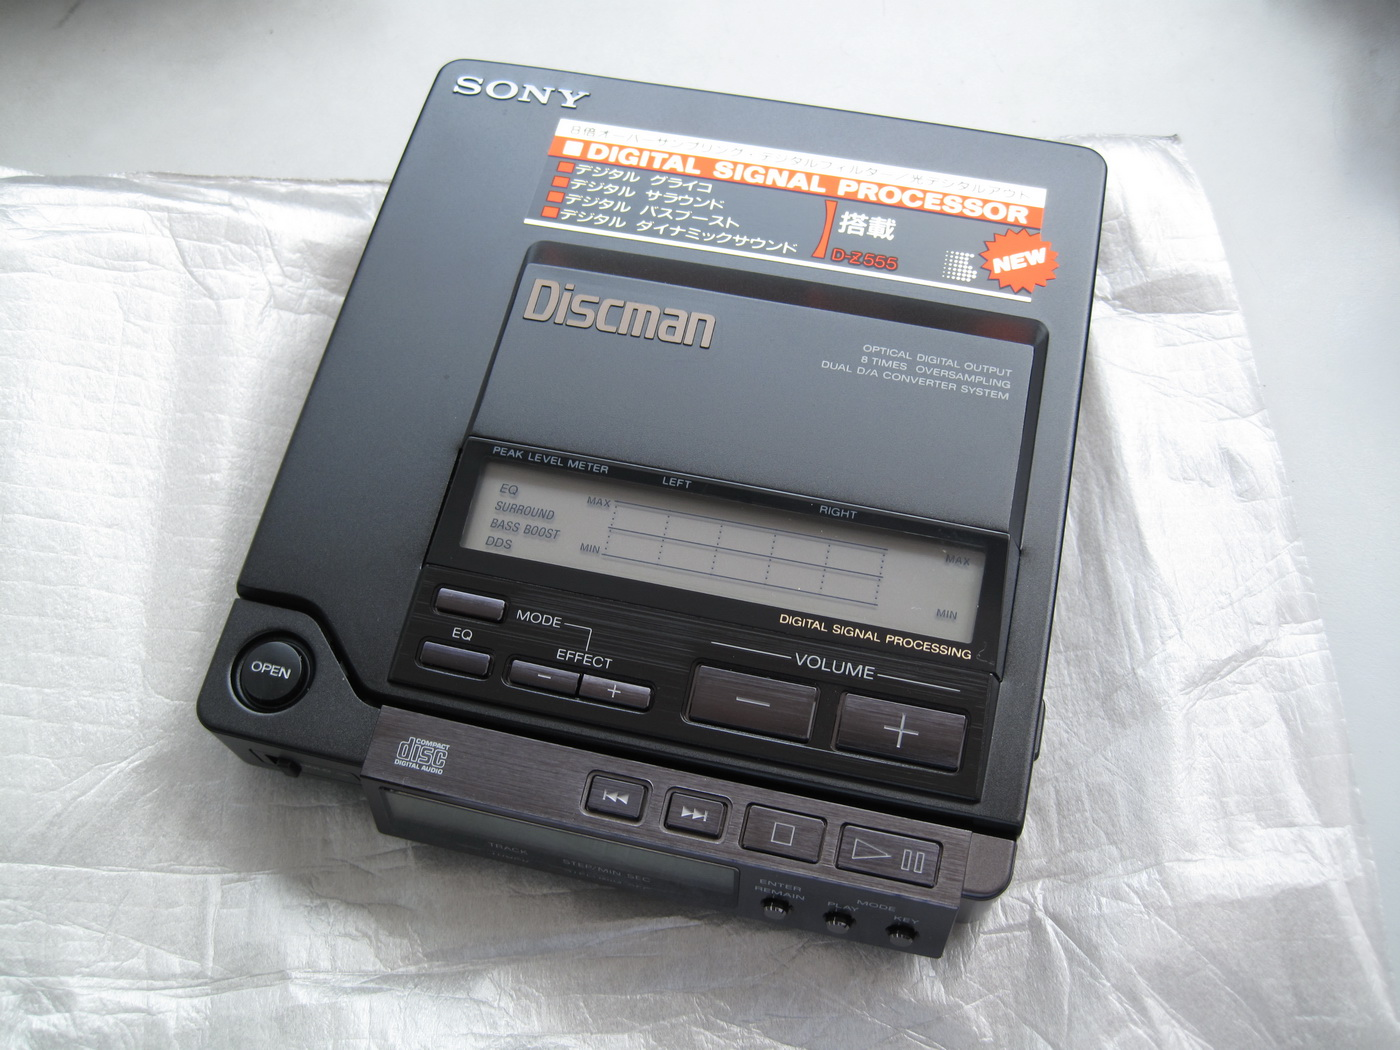 Sony sony cd Walkman repair service d-z555 d-100 d-150 d-250 d-88 and so on